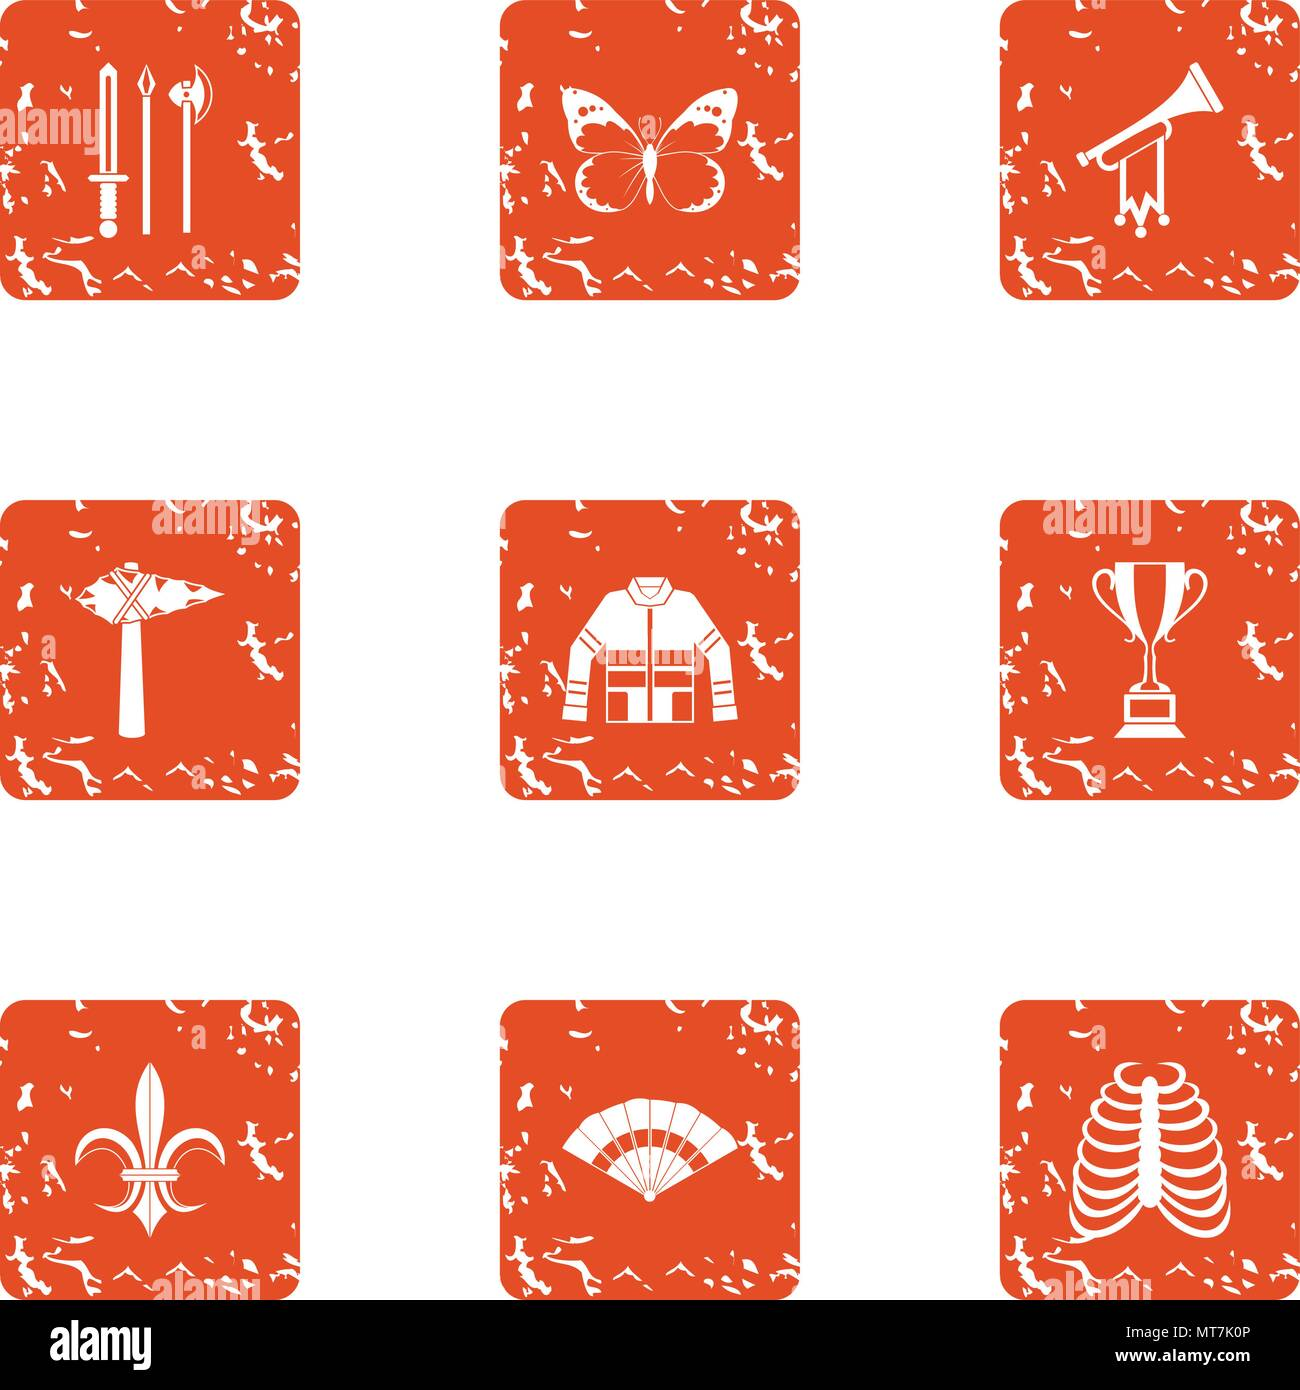 Medieval romanticism icons set, grunge style Stock Vector